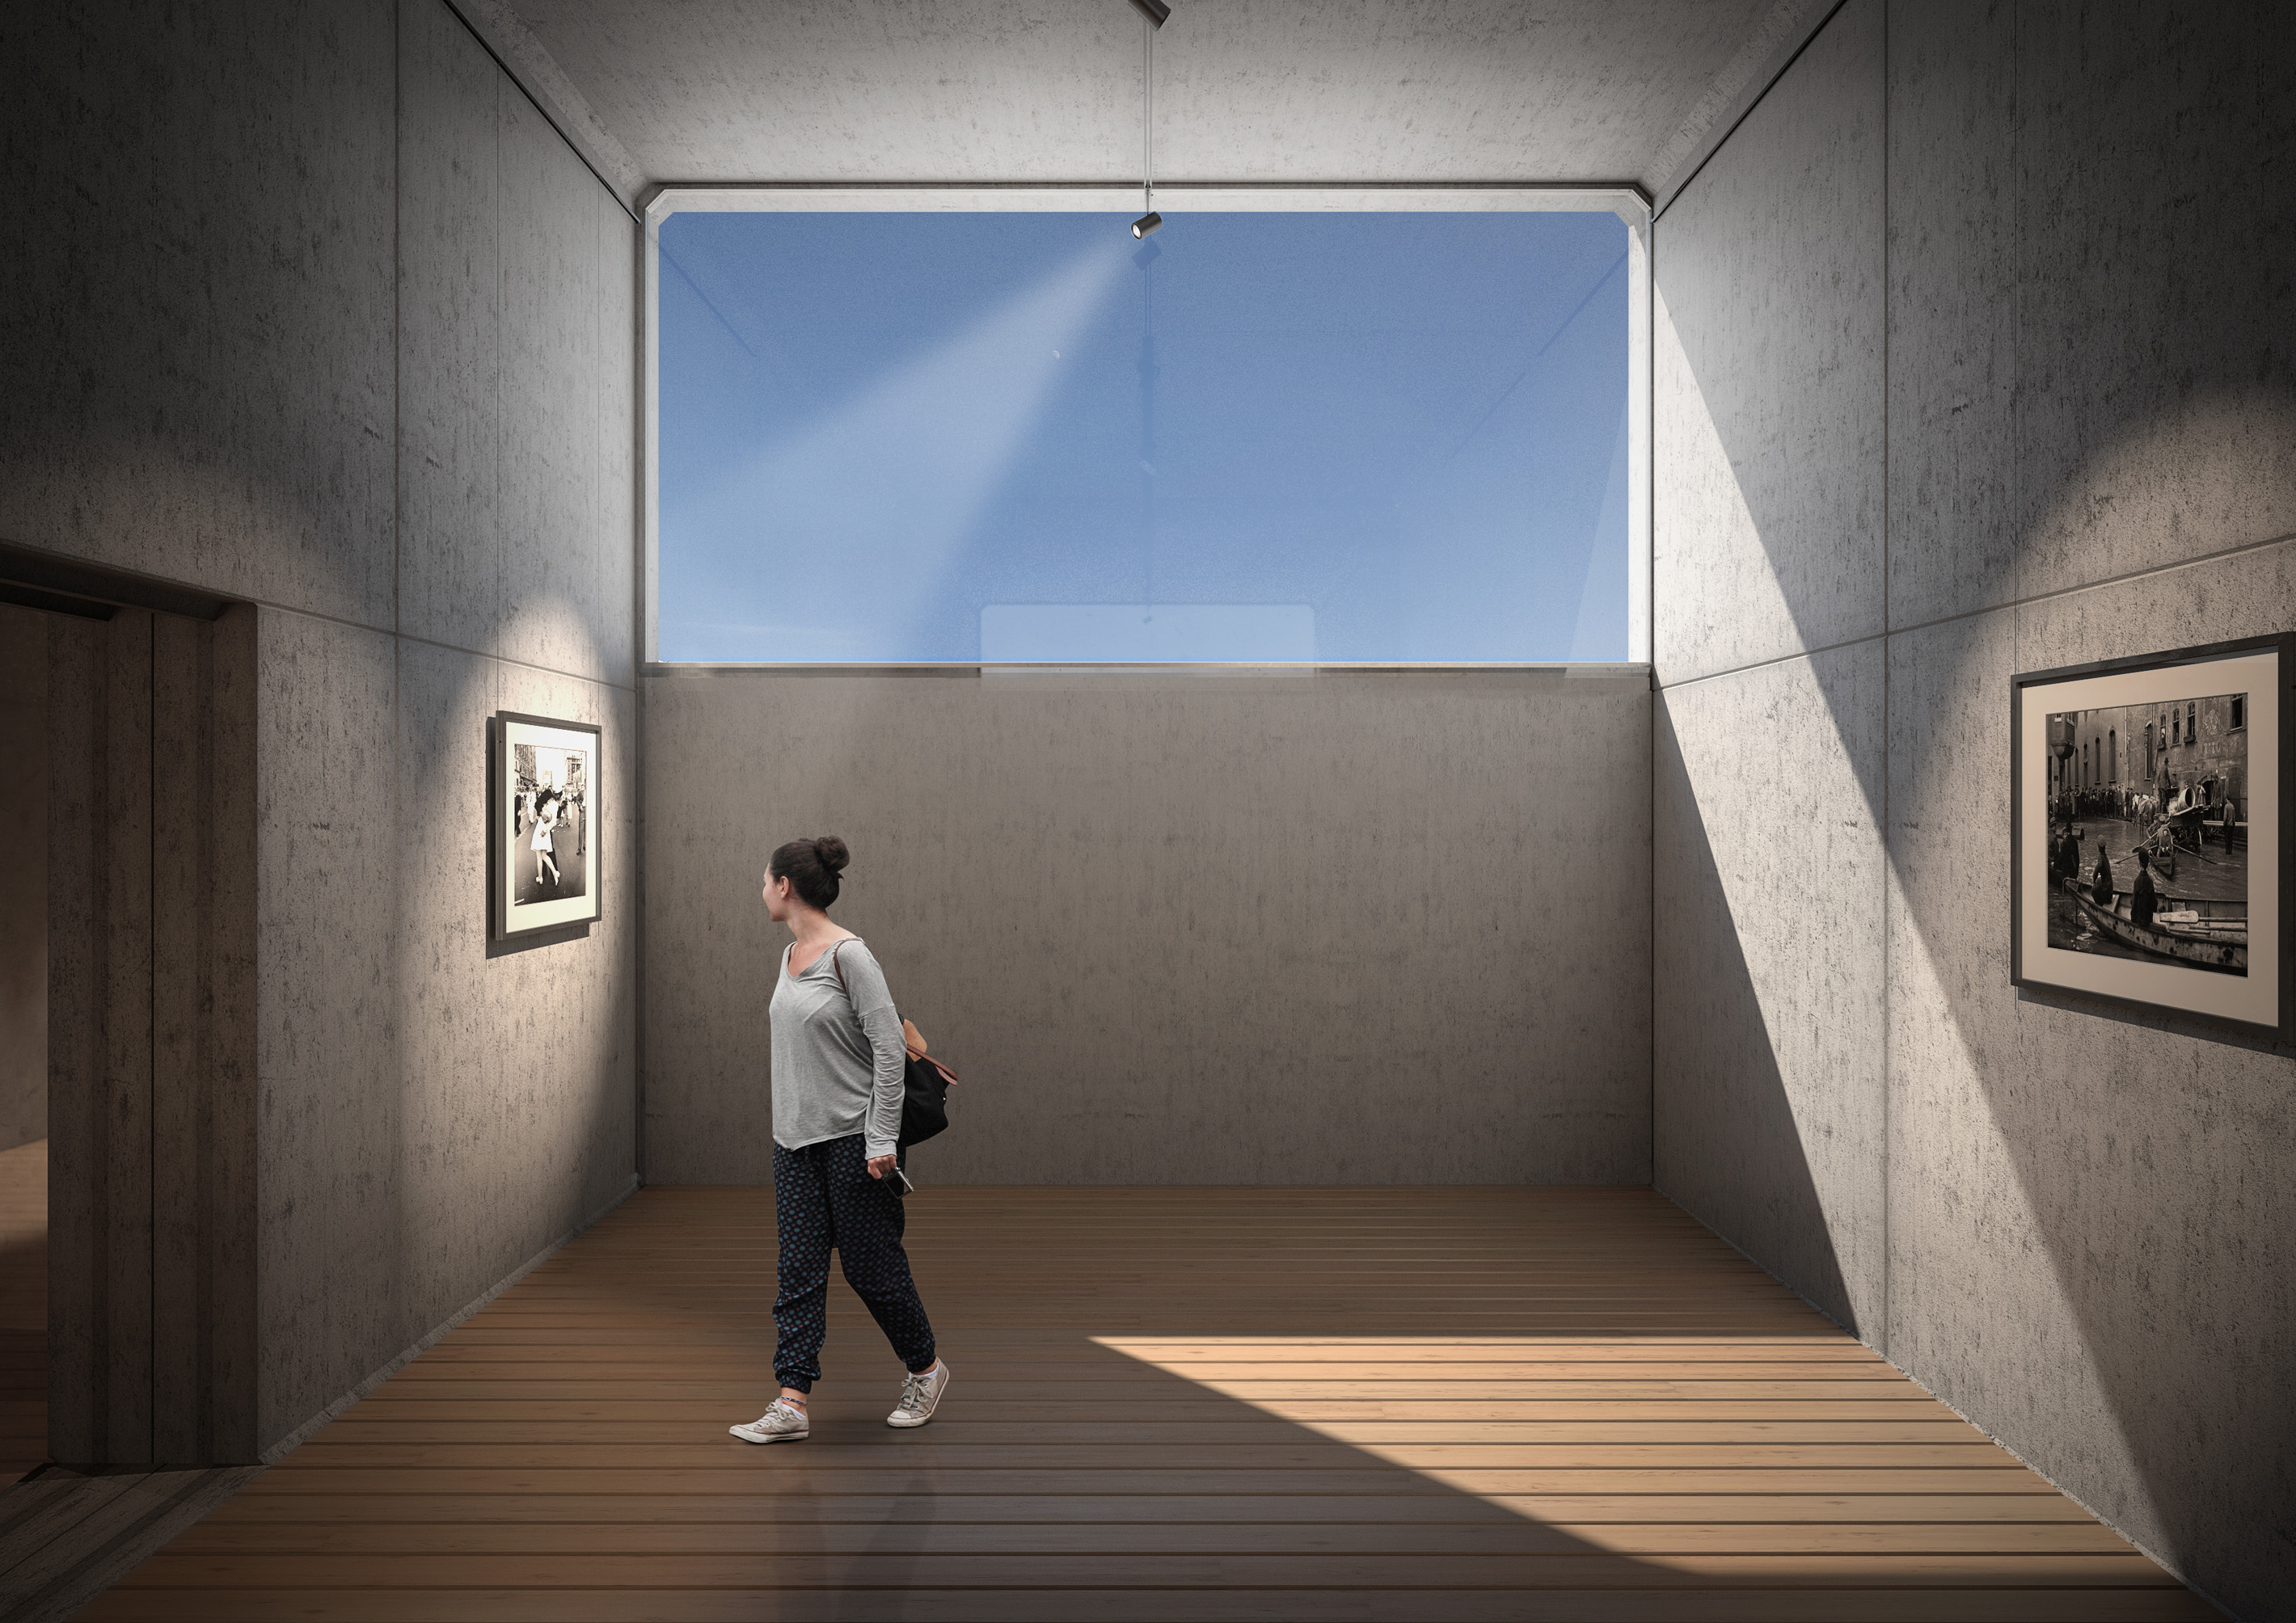 Architectural Visualization for a deployable Art-Pavillion for the Contemporary Art Museum SERRALVES in Porto, Portugal.